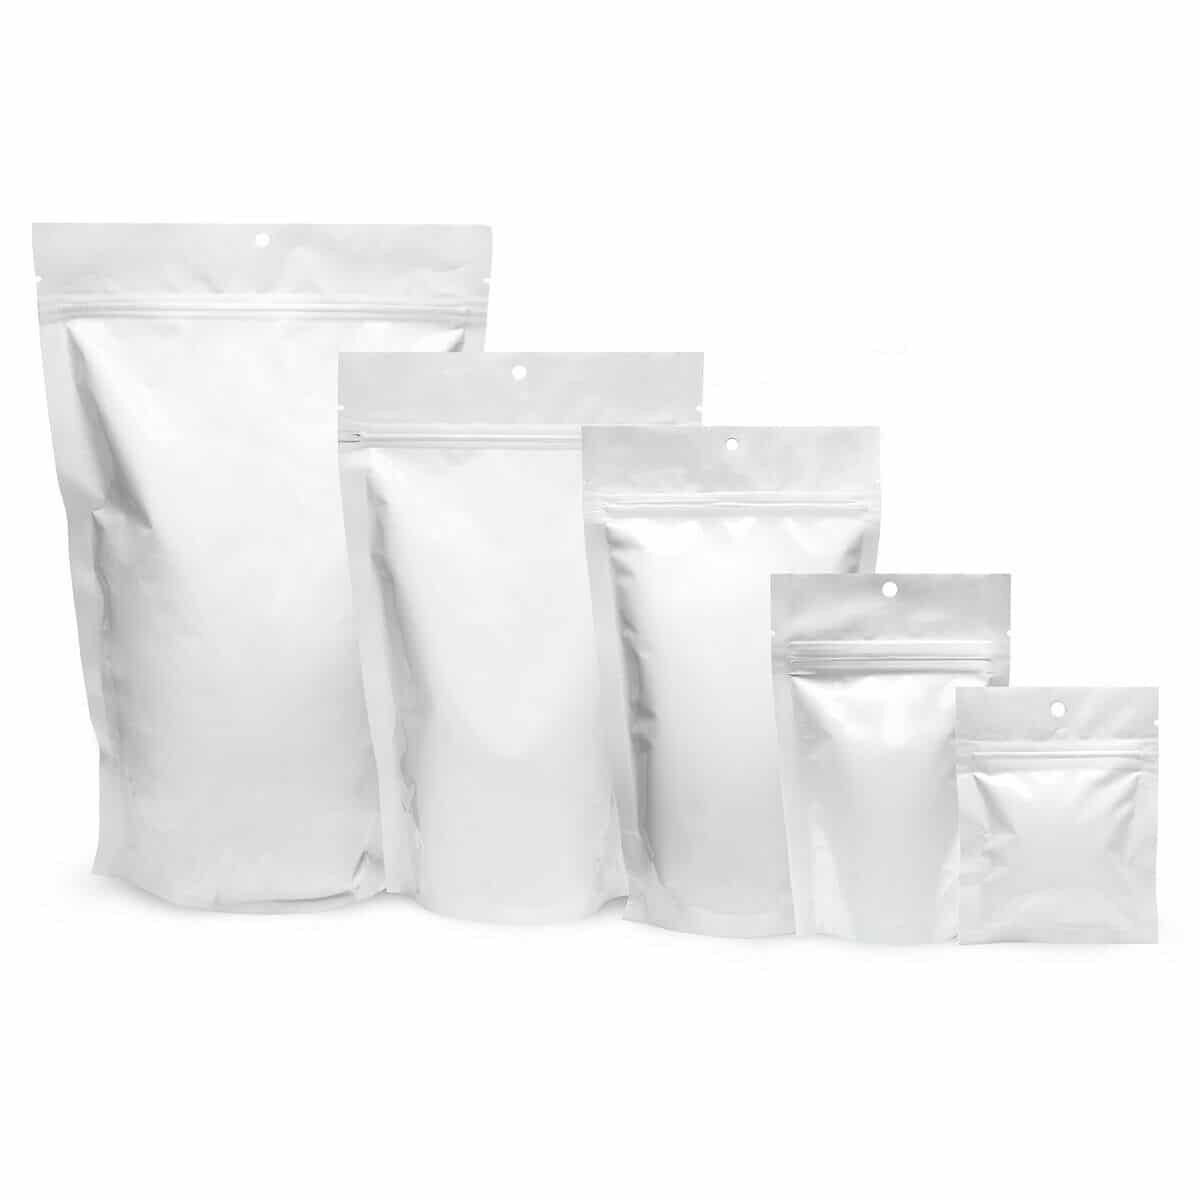 CareWhite Stand Up Pouches and Lay Flat Bags